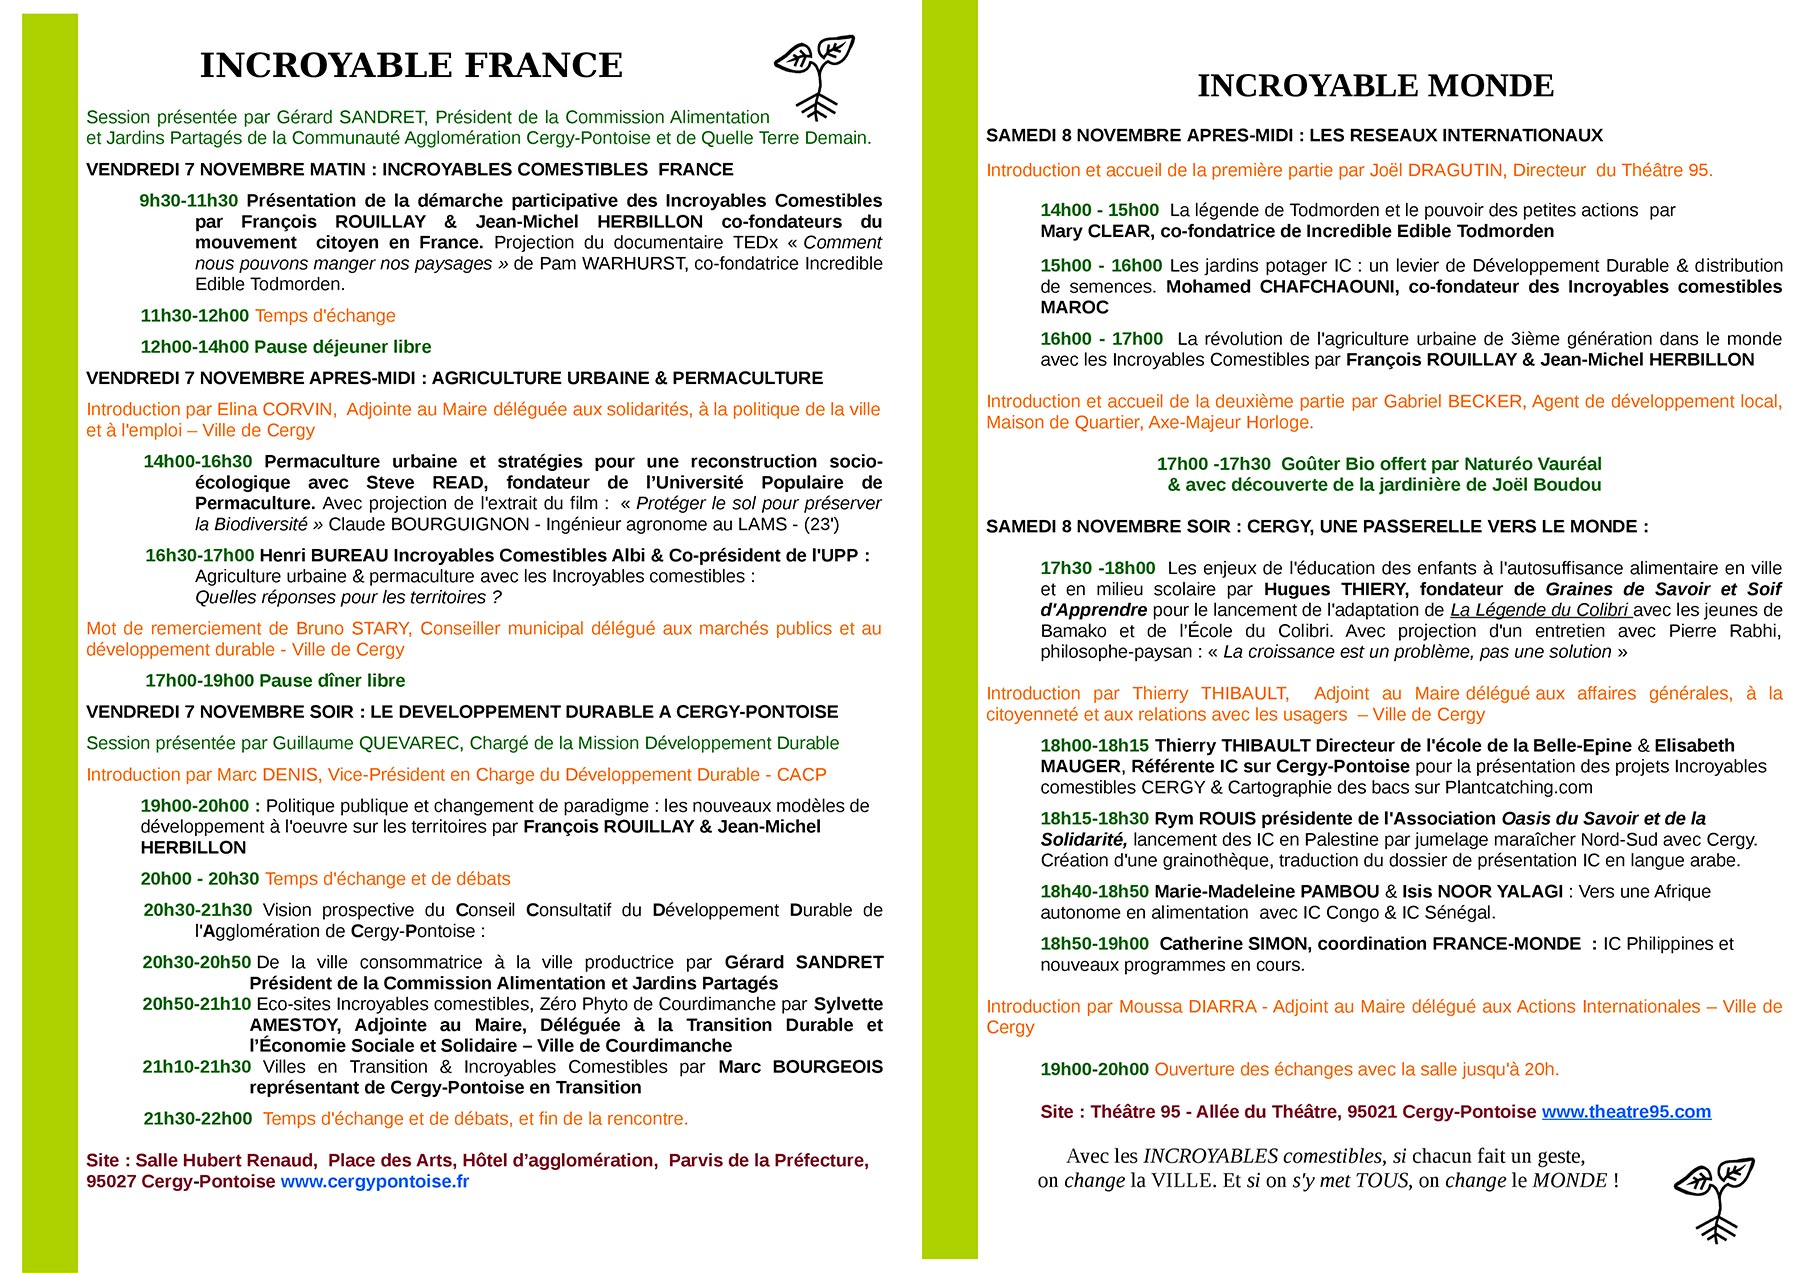 programme_incroyables_comestibles_conference_cergy_v2_w1800